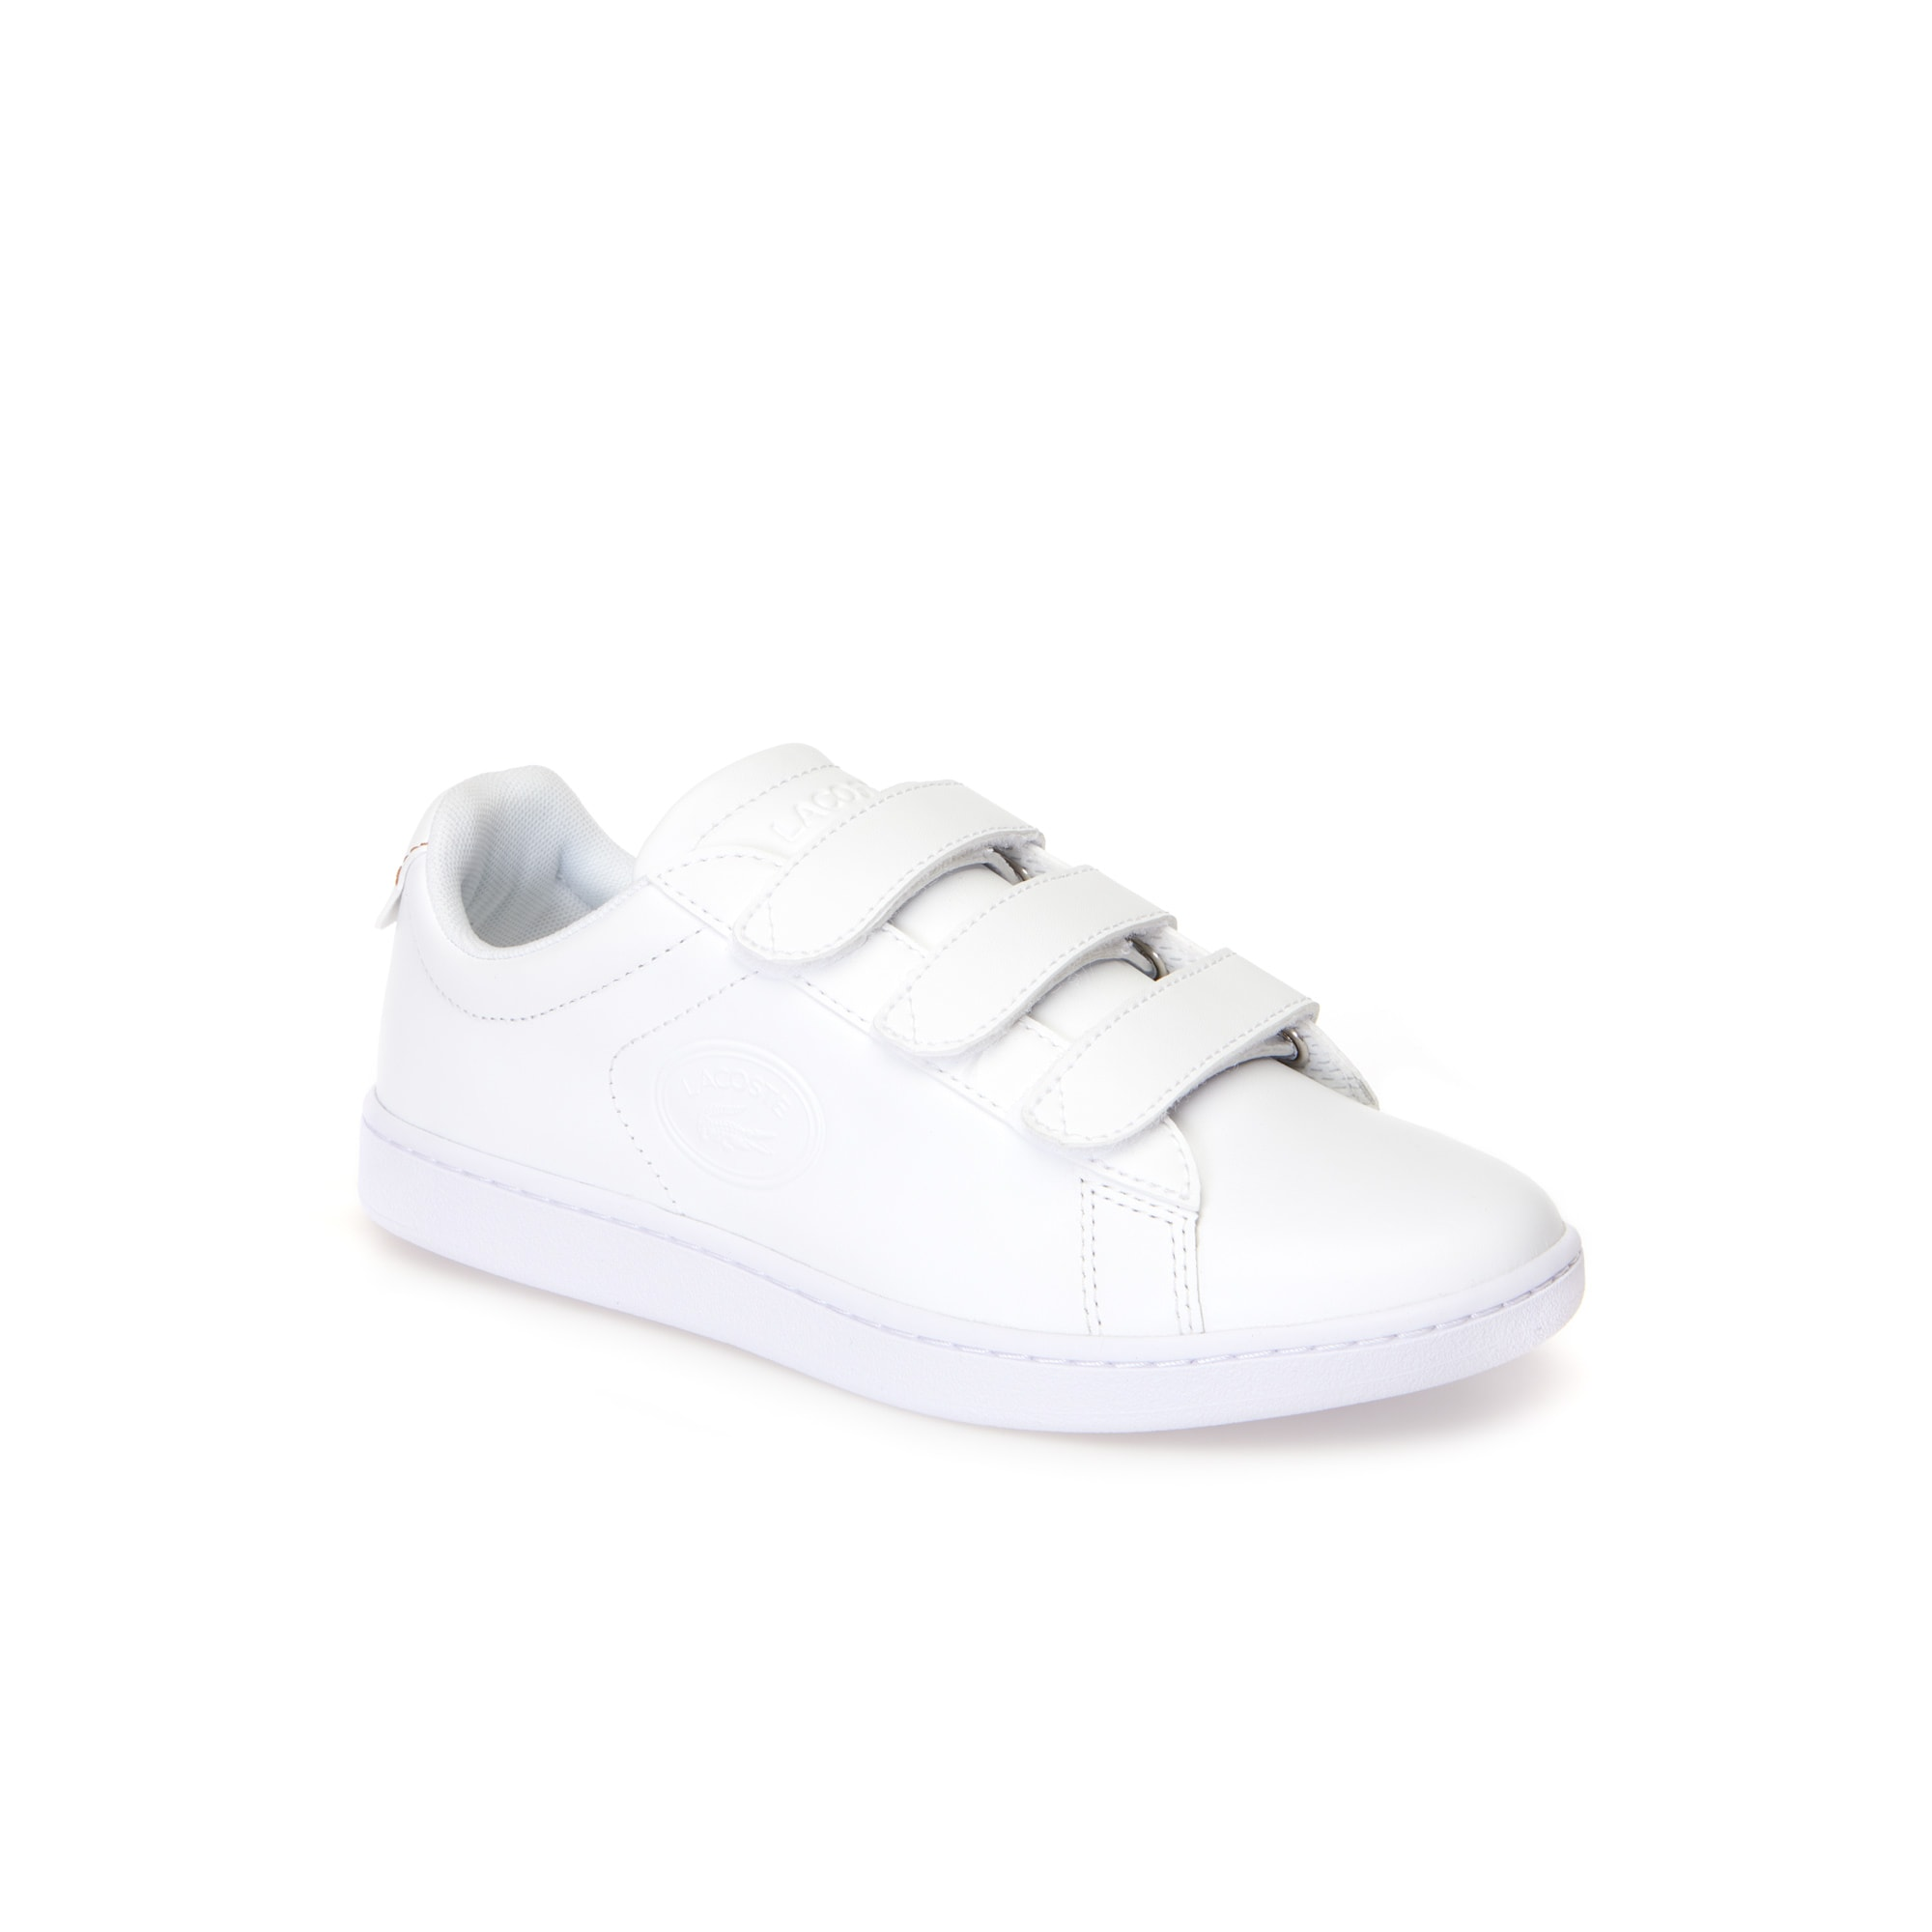 a370673bdd Women's Carnaby Evo Strap Leather Trainers